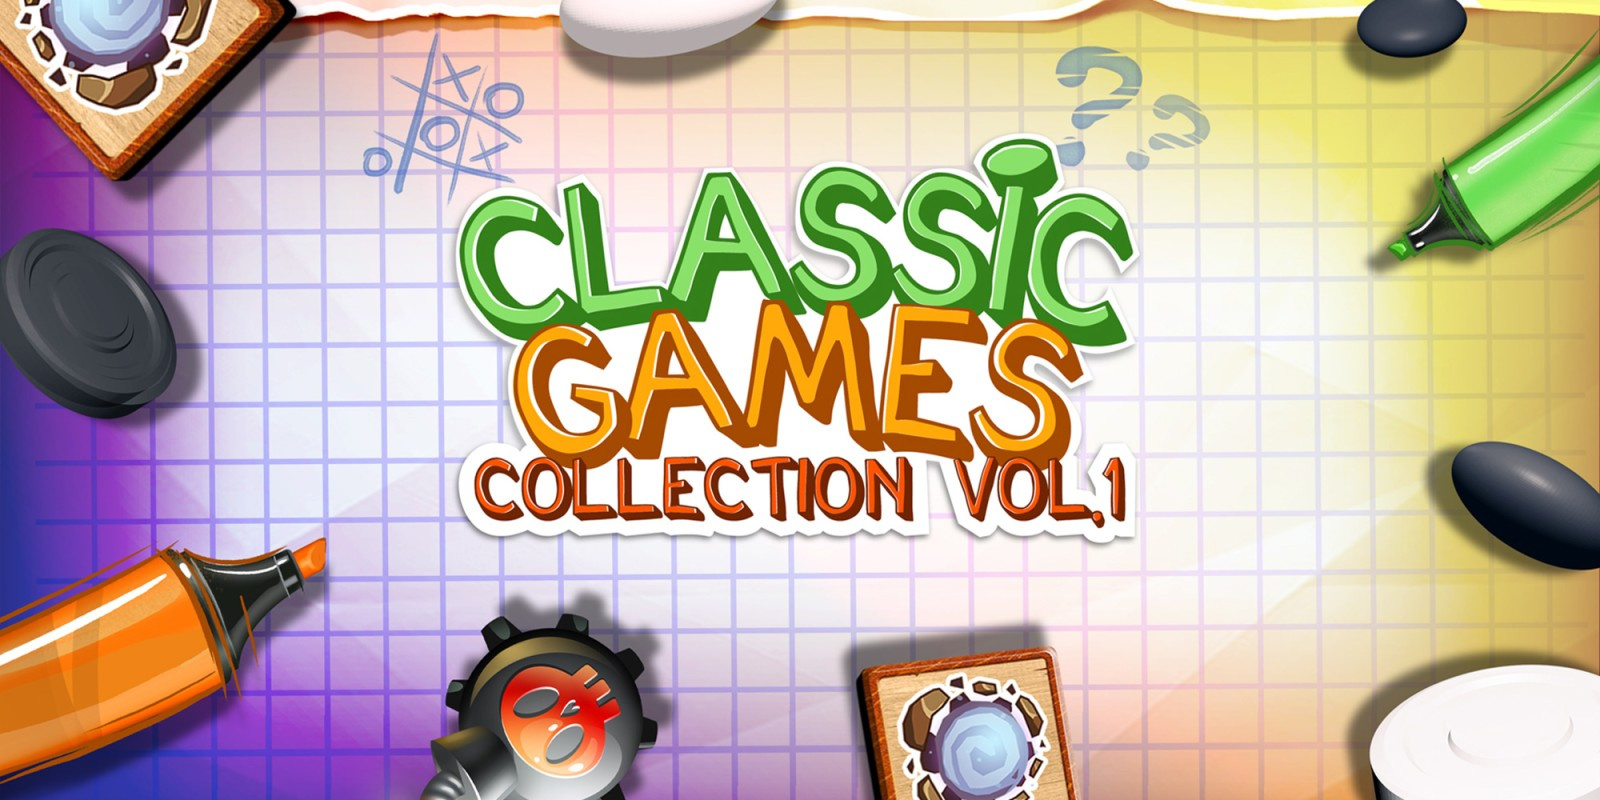 Classic Games Collection Vol.1